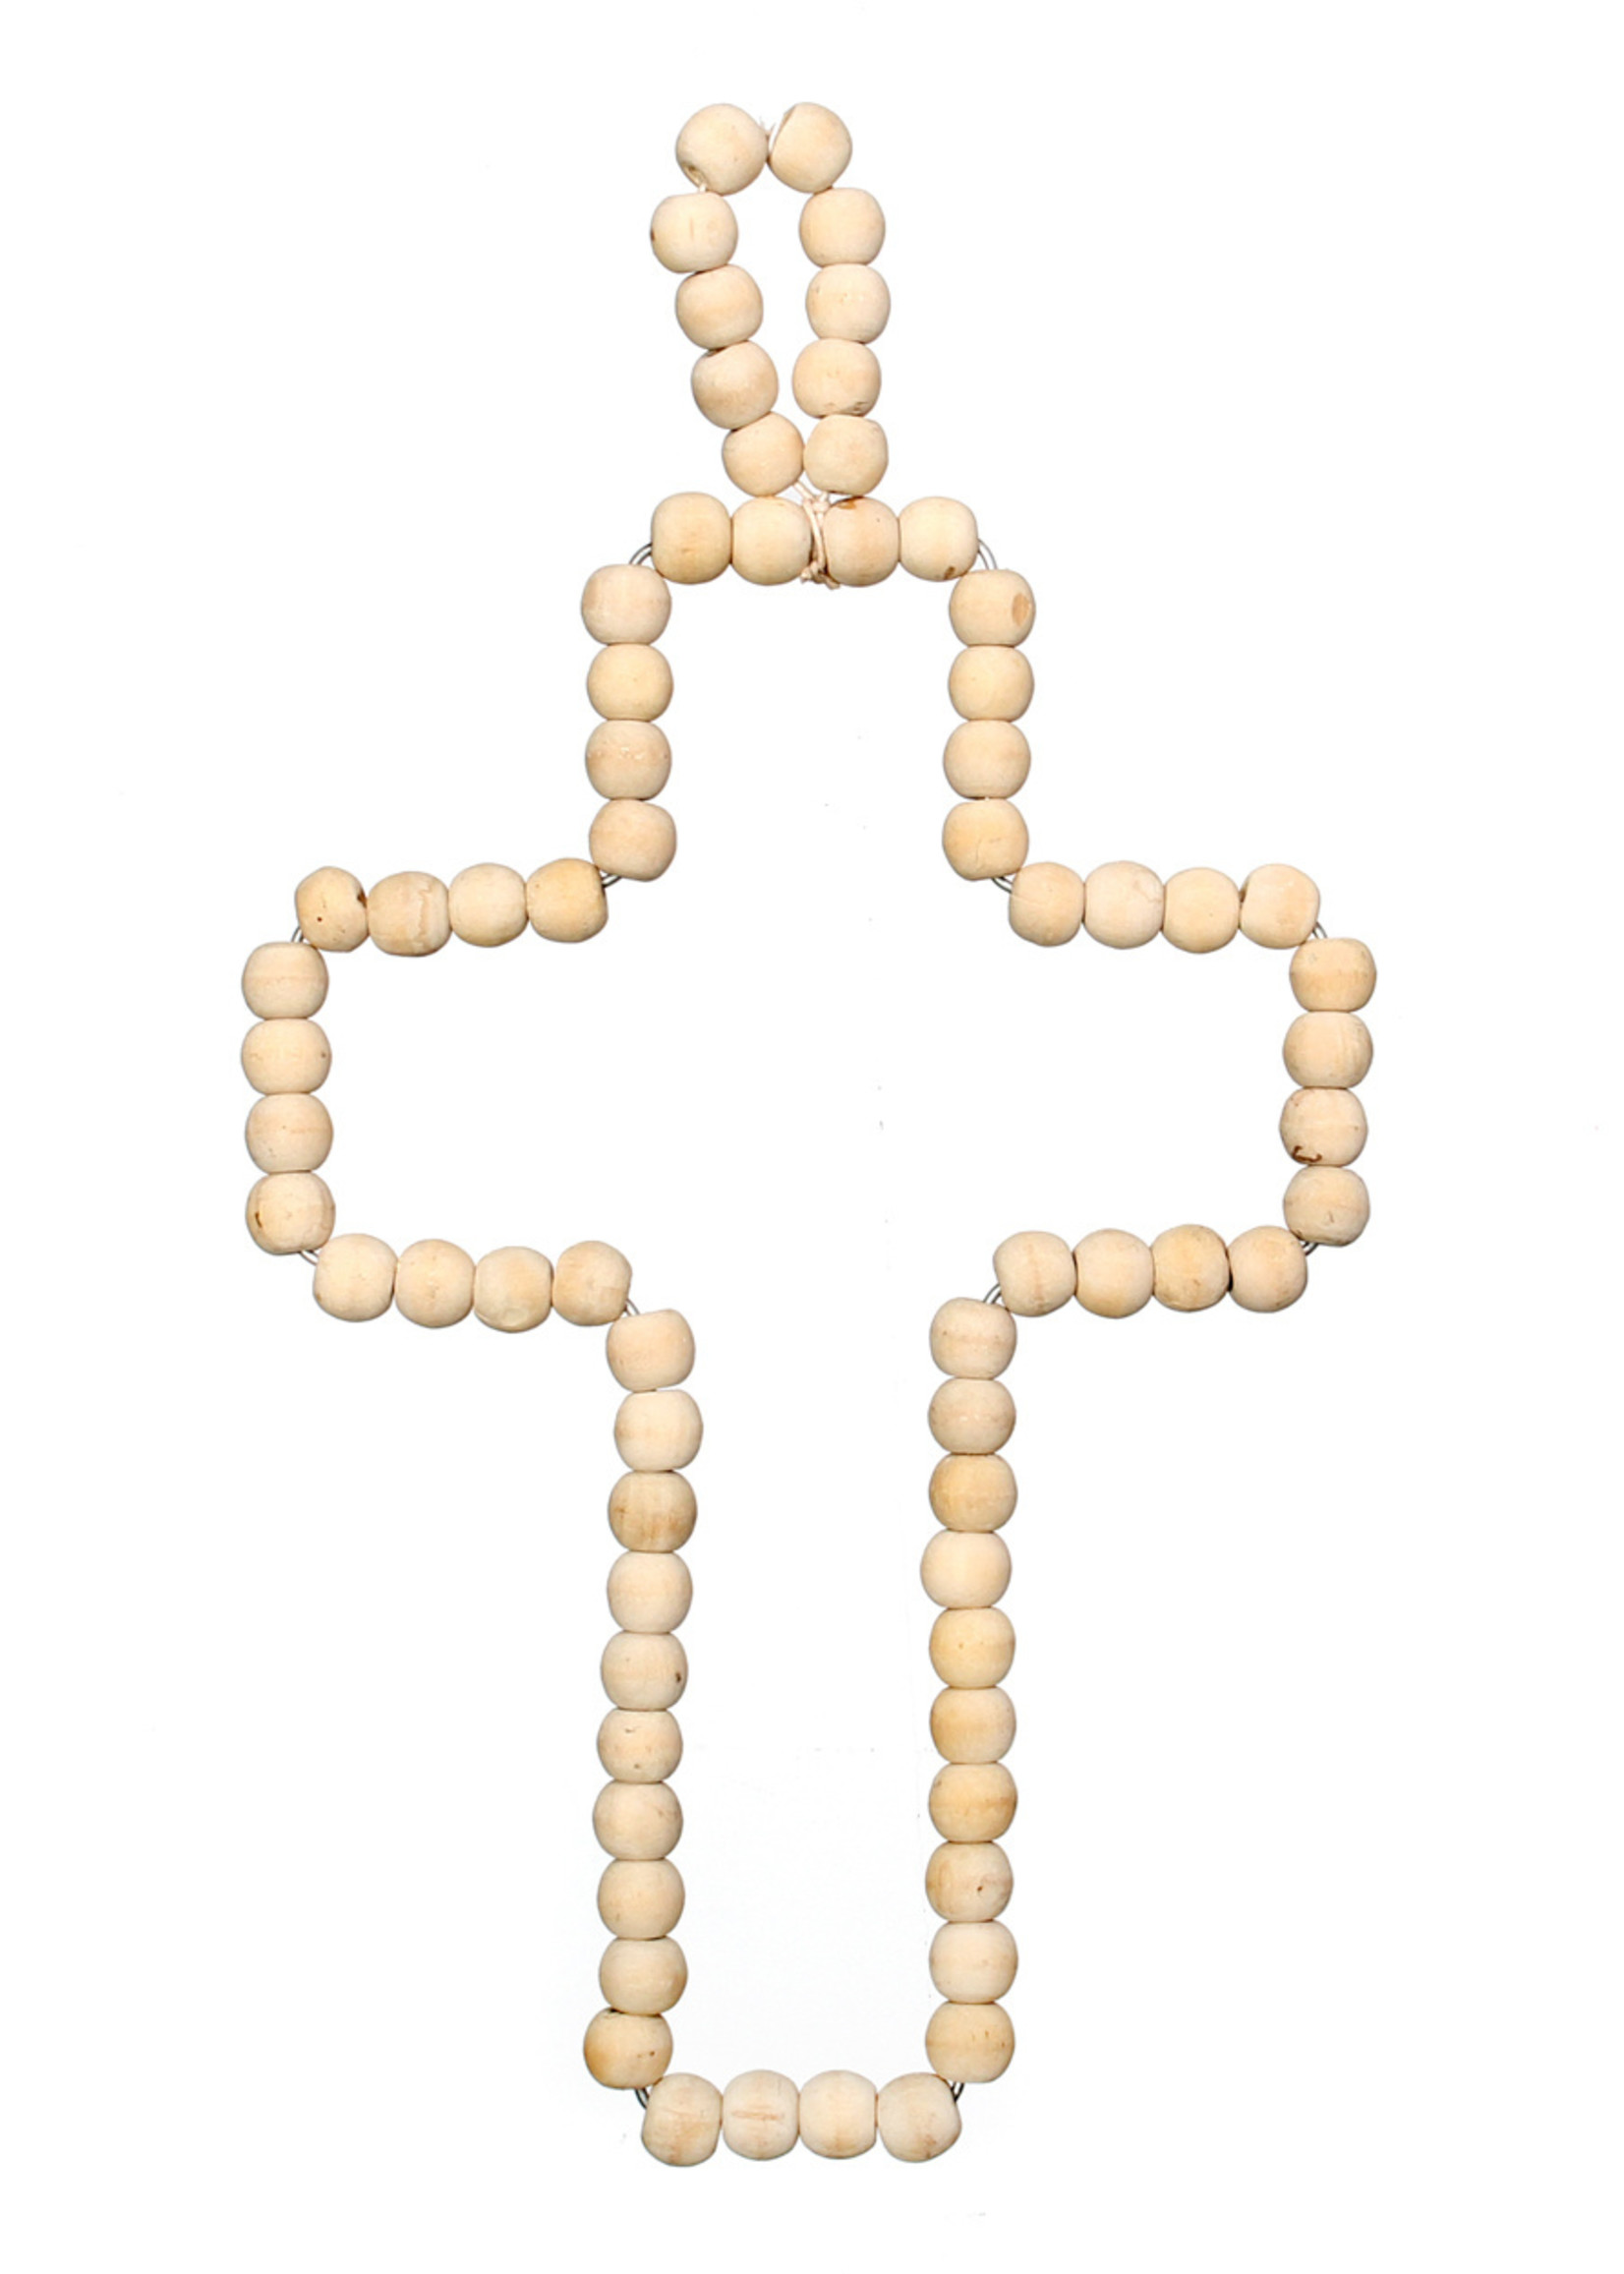 The Wooden Cross Natural